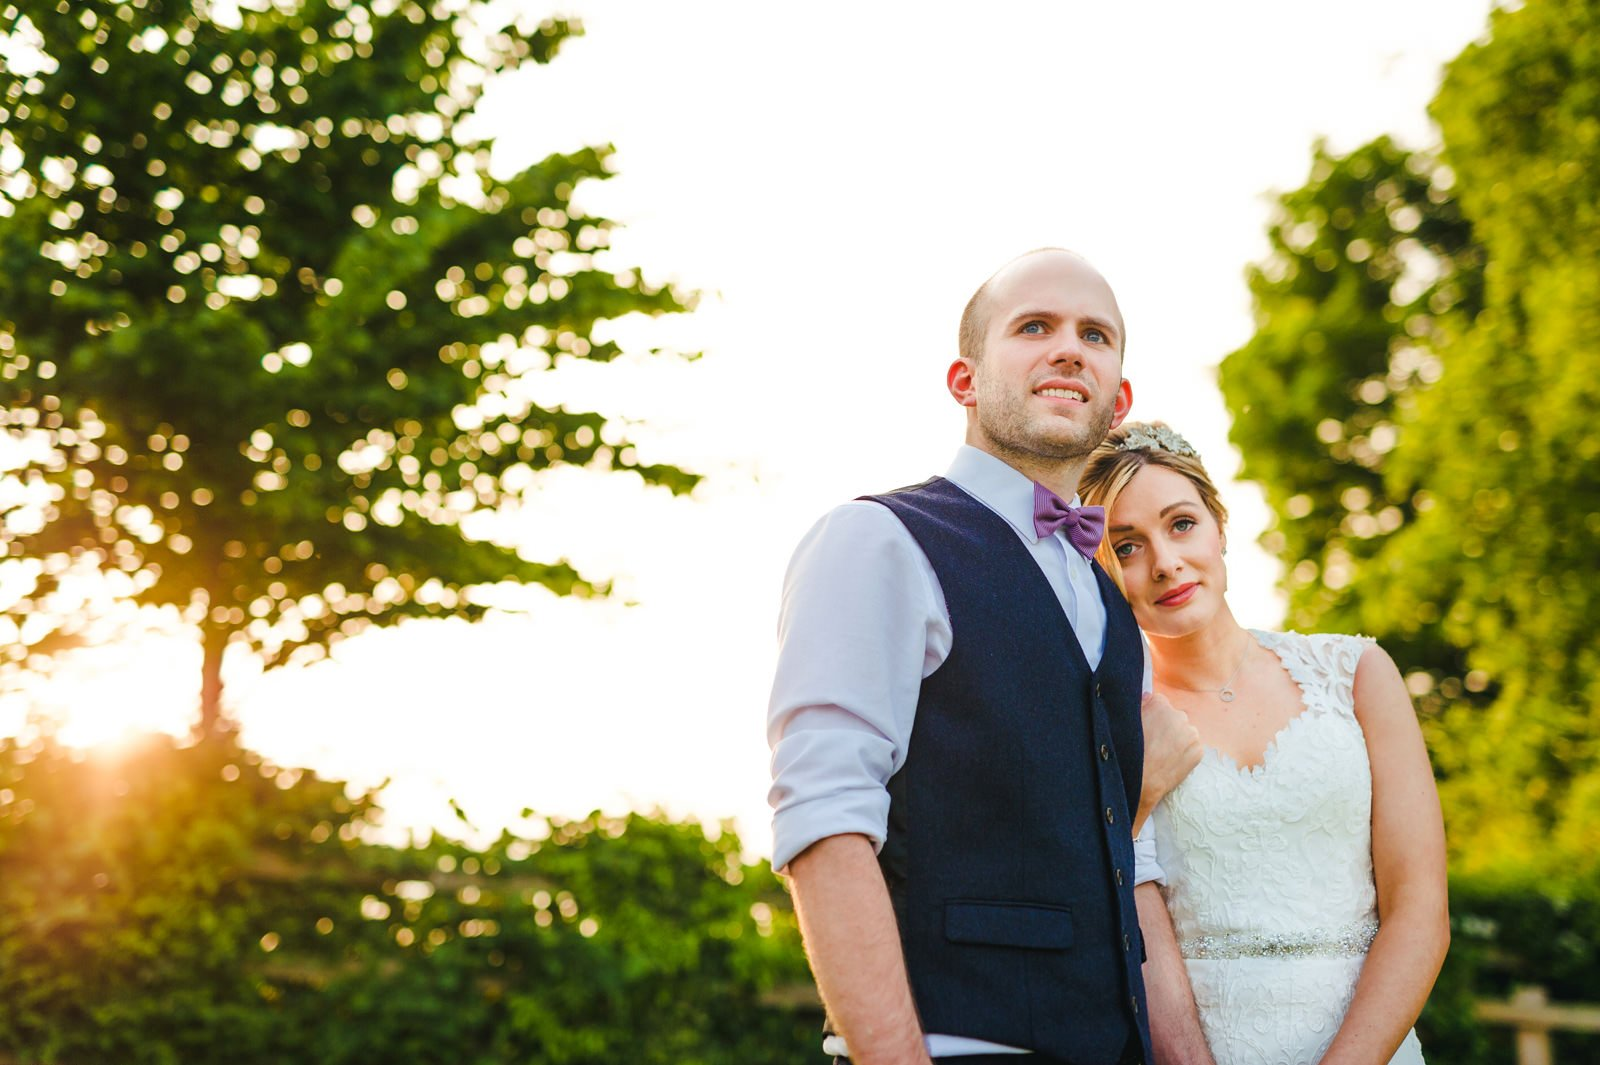 Millers Of Netley wedding, Dorrington, Shrewsbury | Emma + Ben 87